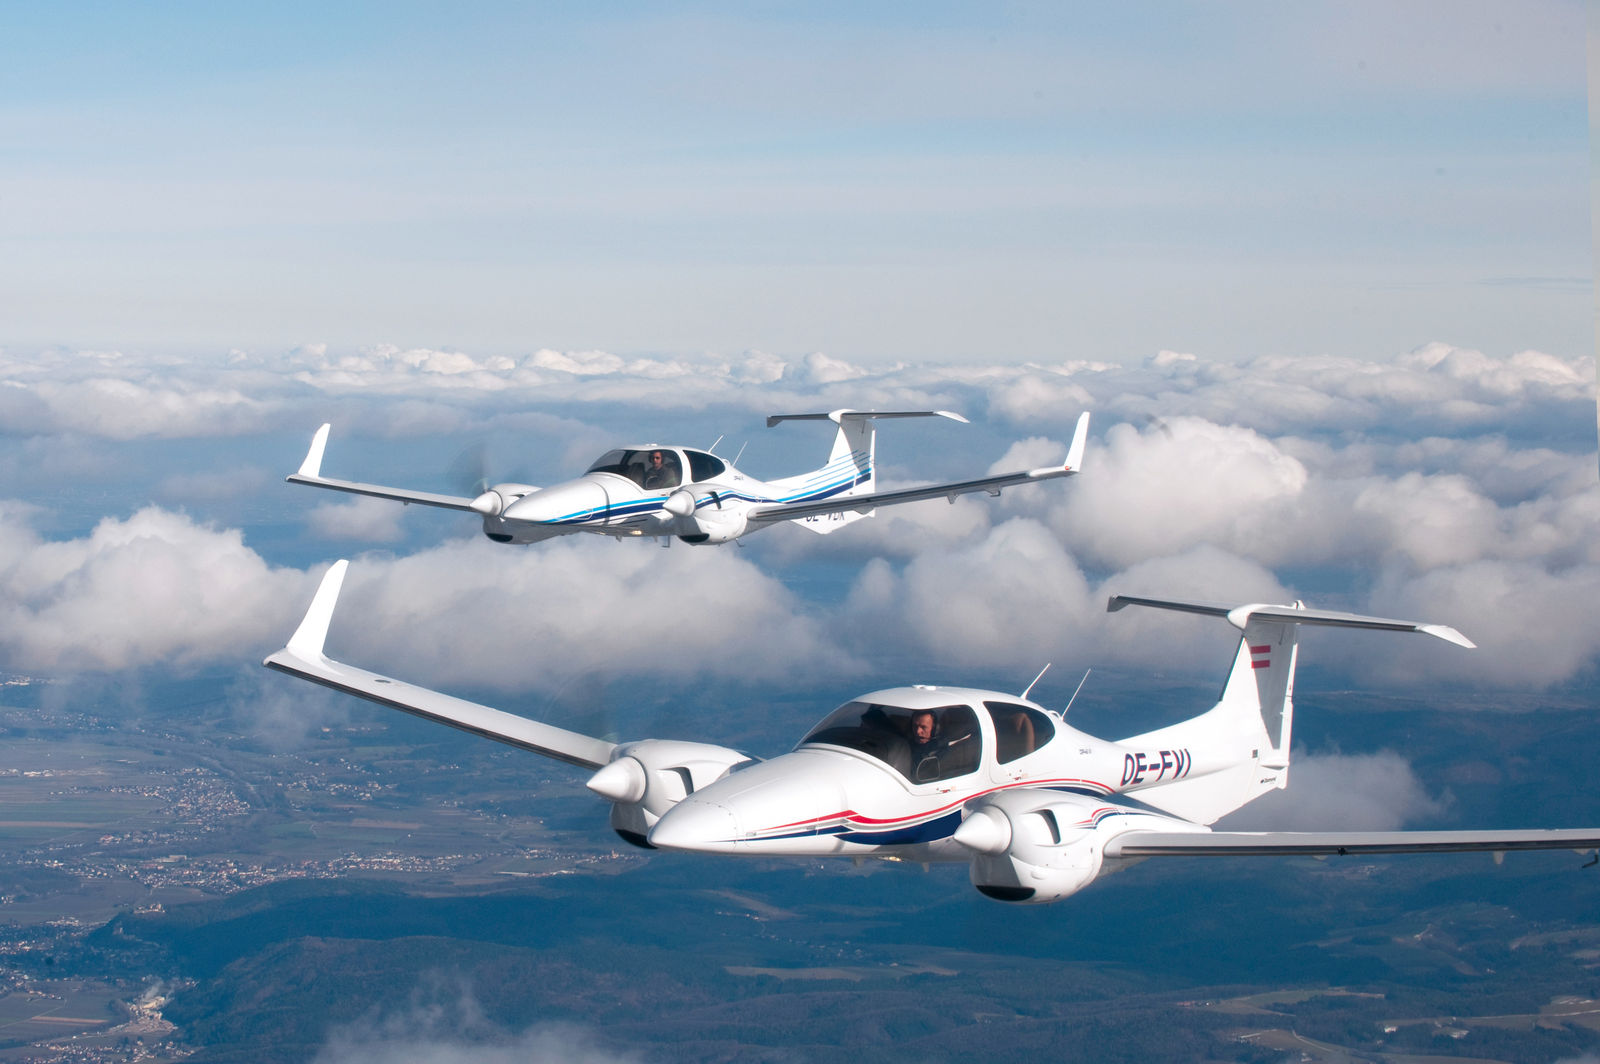 DA42-VI - • 4 seats, convenient access• Panoramic canopy• Luxurious leather interior• Twin 170hp Jet fuel AE300 Engines• High Fuel Efficiency